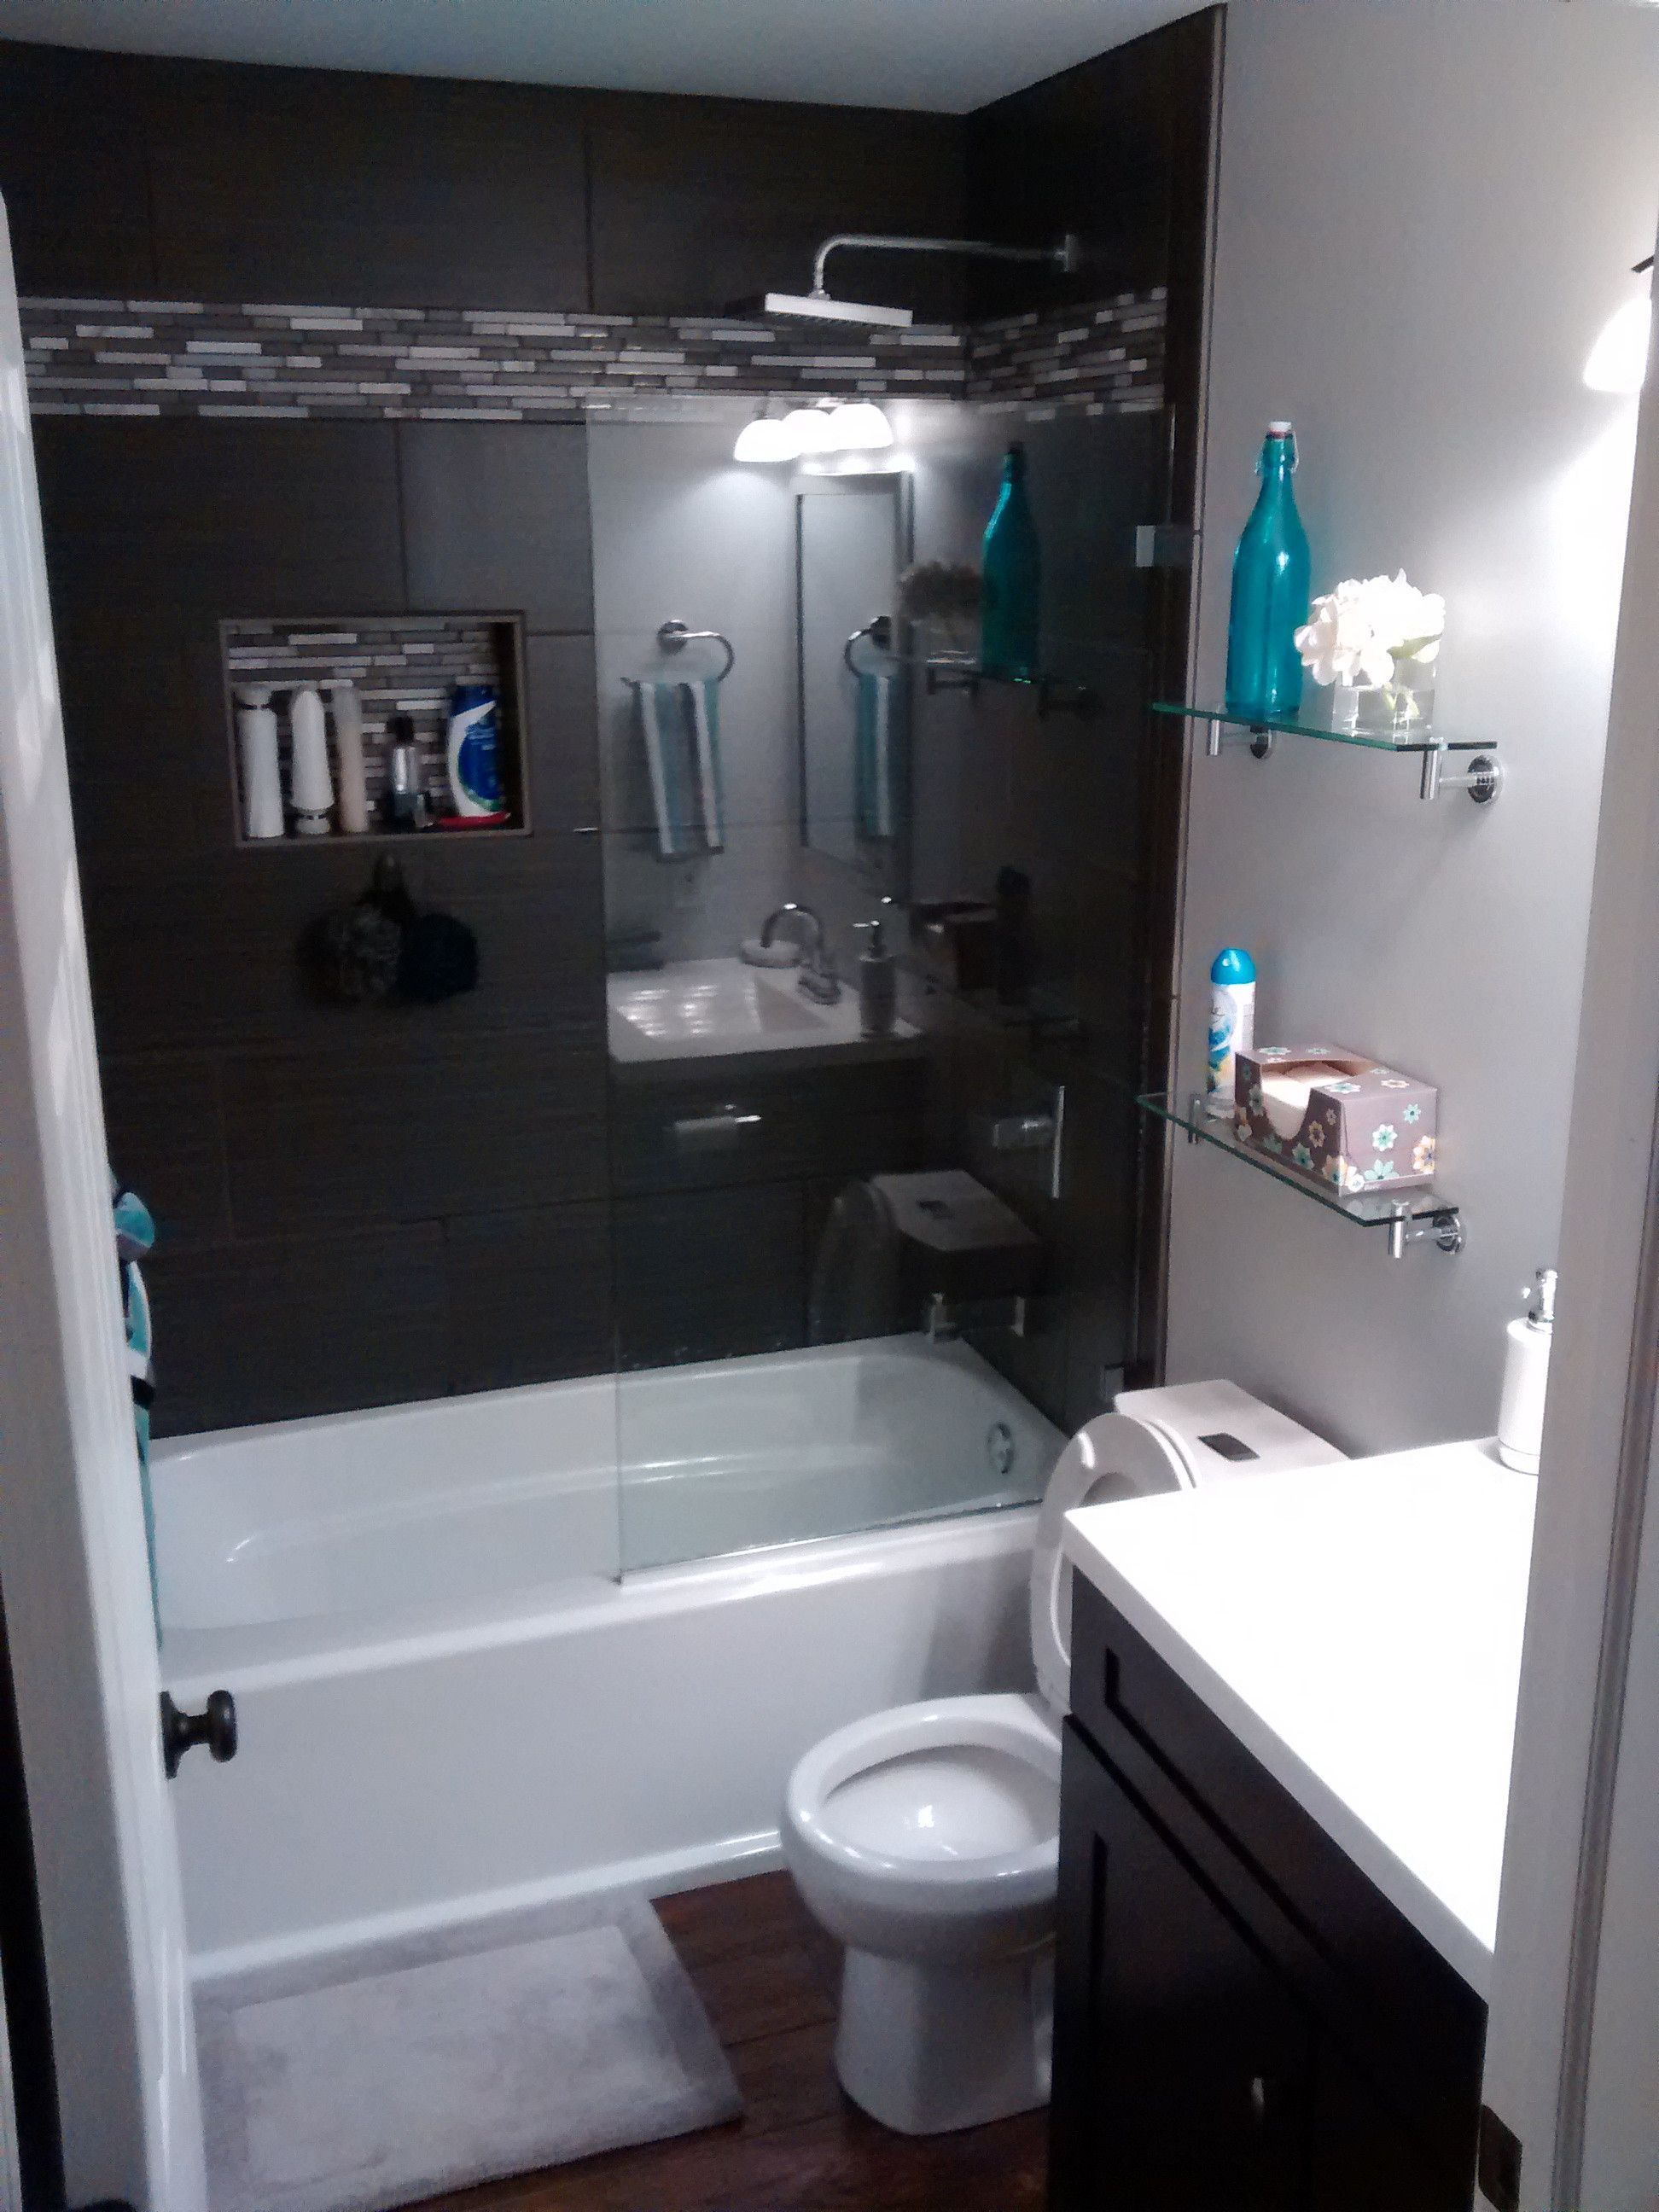 makeover remodel on ideas gallery budget home design bathroom luxurious about perfect with a